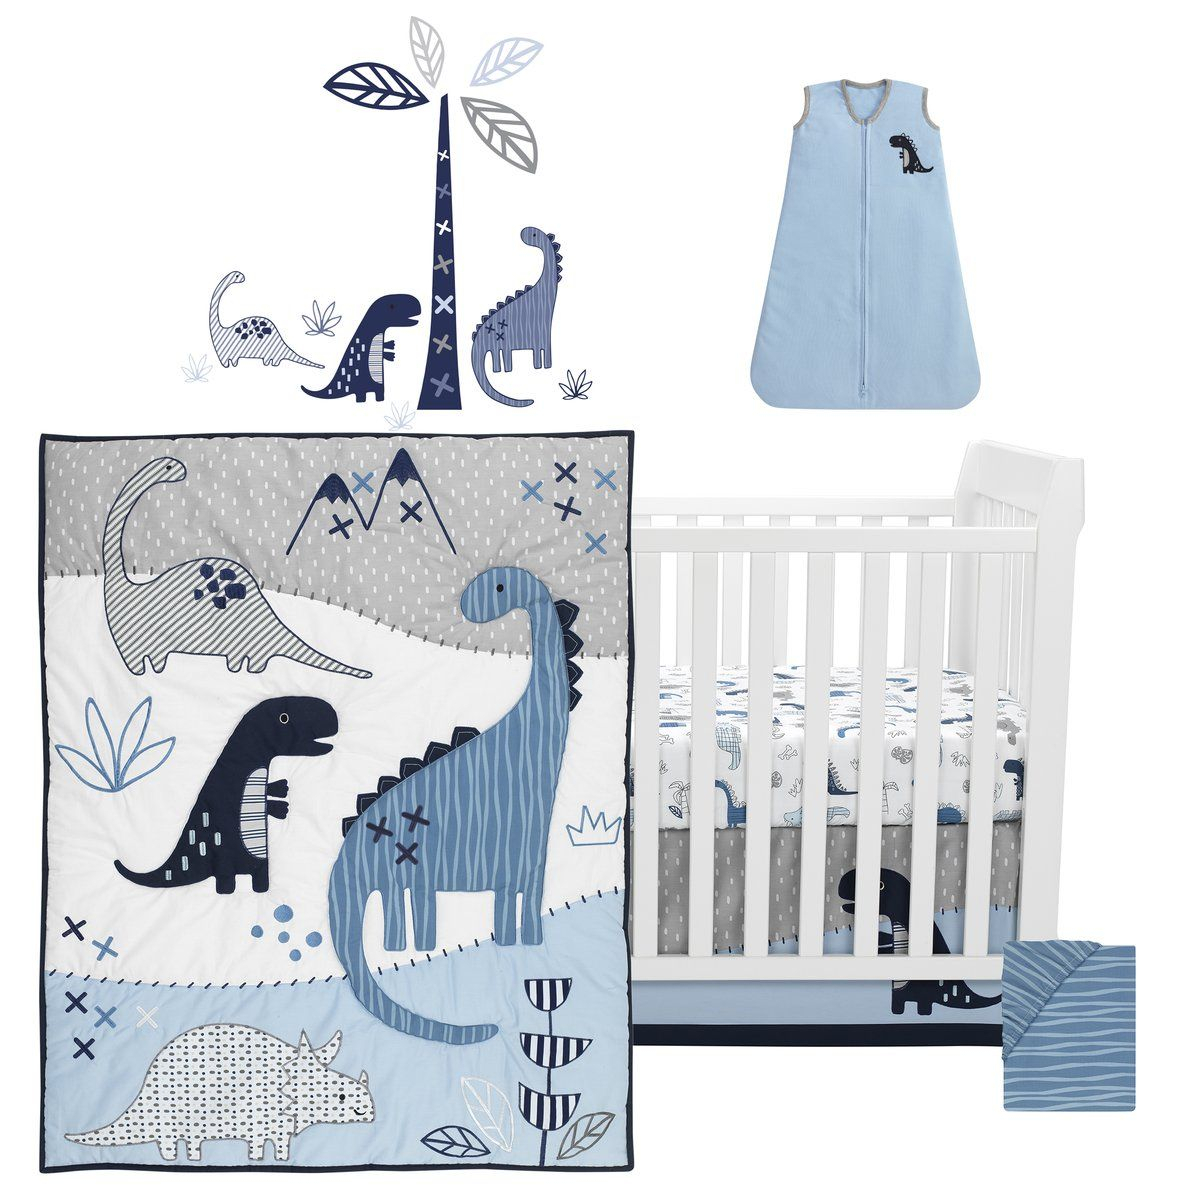 Baby Dino 6 Piece Crib Bedding Set | Dinosaur Nursery, Baby Within Most Popular Blended Fabric Mod Dinosaur 3 Piece Wall Hangings Set (View 11 of 20)